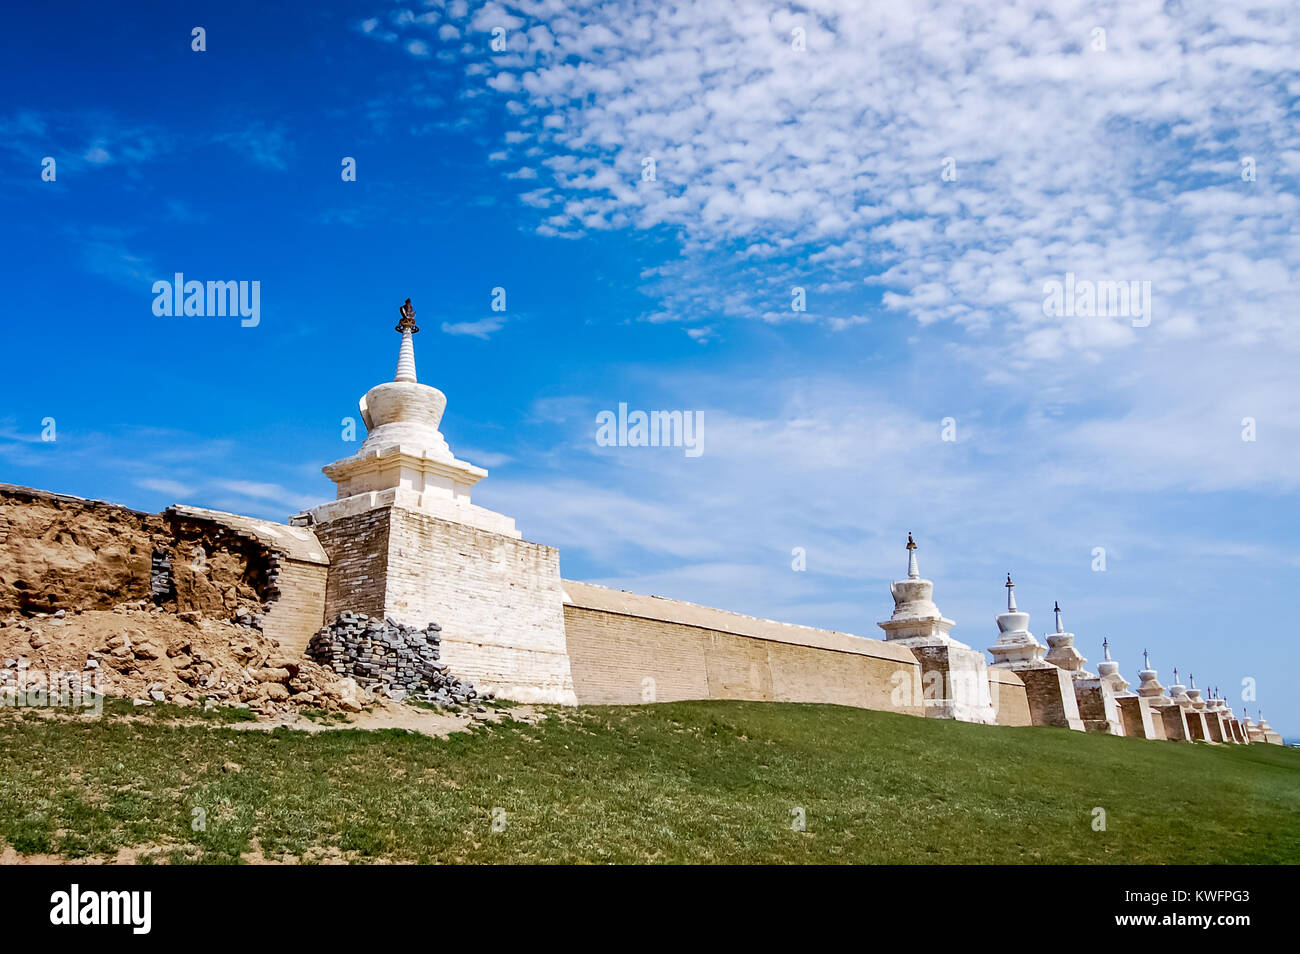 Kharhorin, Central Mongolia - July 26, 2010: Erdene Zuu Monastery, Ovorkhangai Province. One of largest remaining - Stock Image